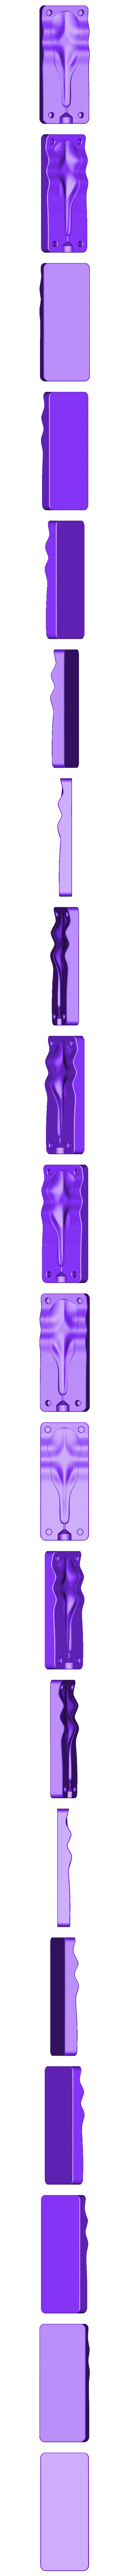 Cuttlefish Reaper Bottom.STL Download STL file The Cuttlefish Reaper Fishing Lure Mold • 3D printable model, sthone